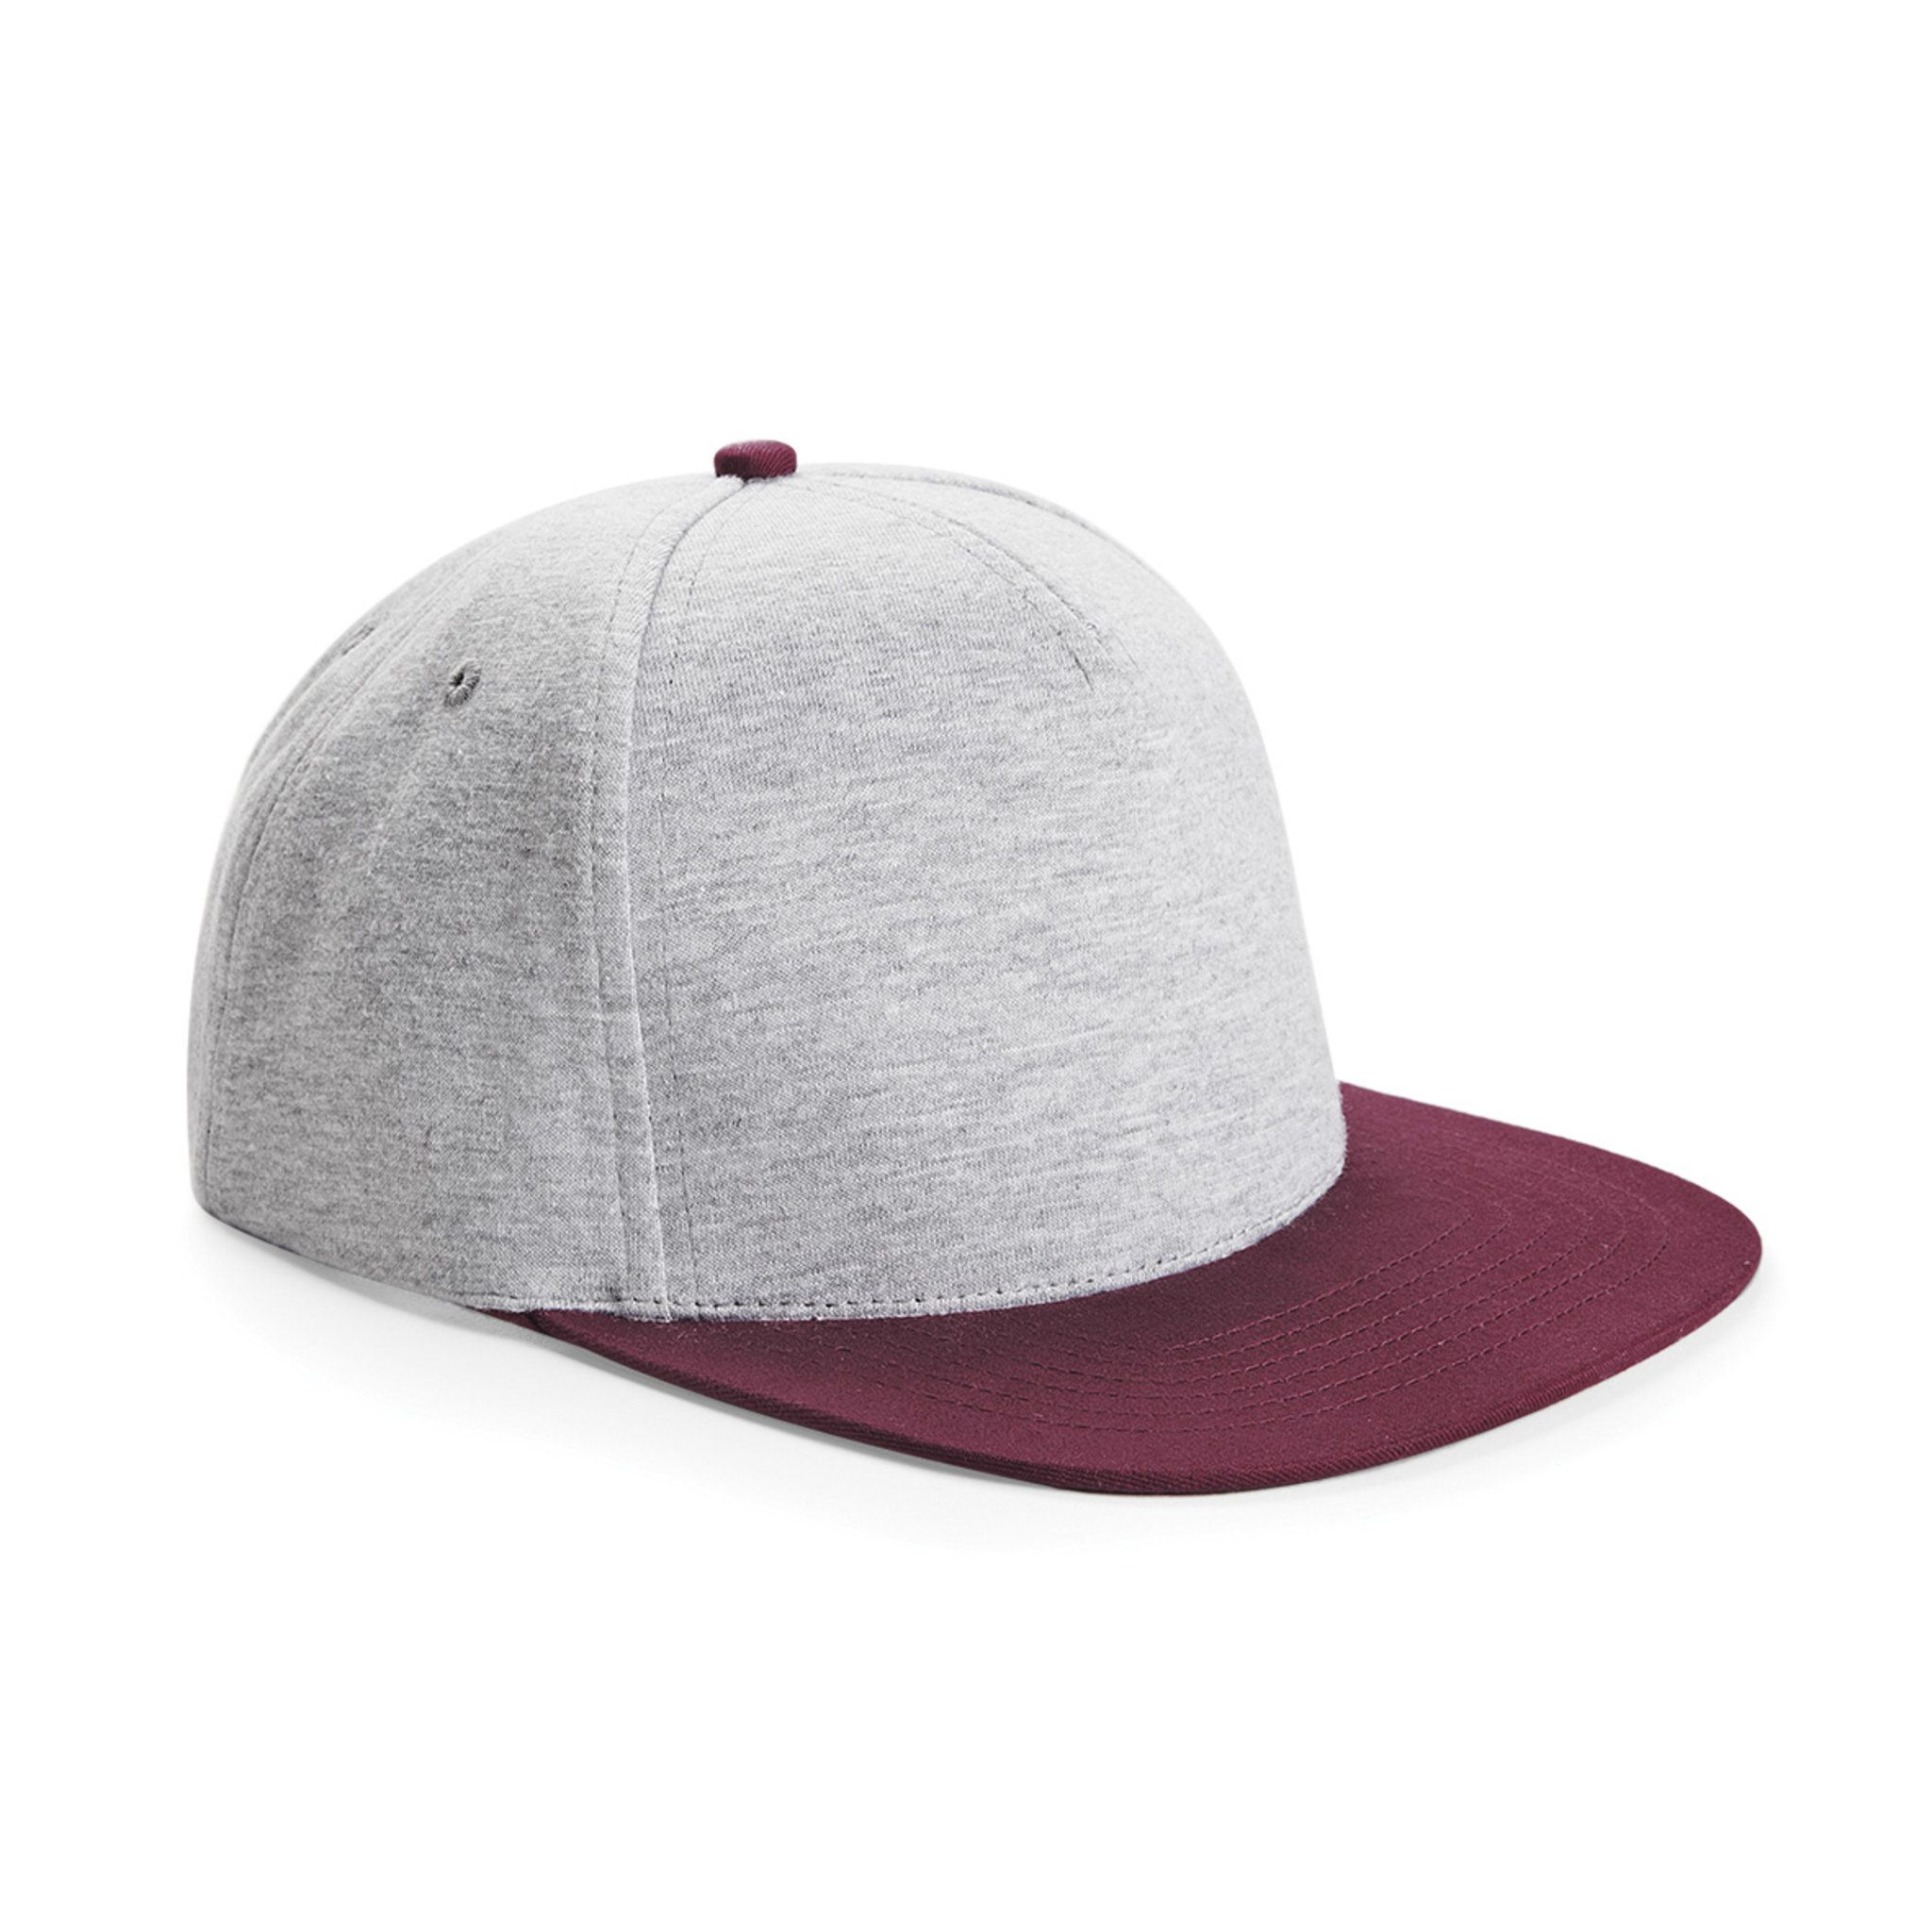 BURGUNDY & HEATHER GREY